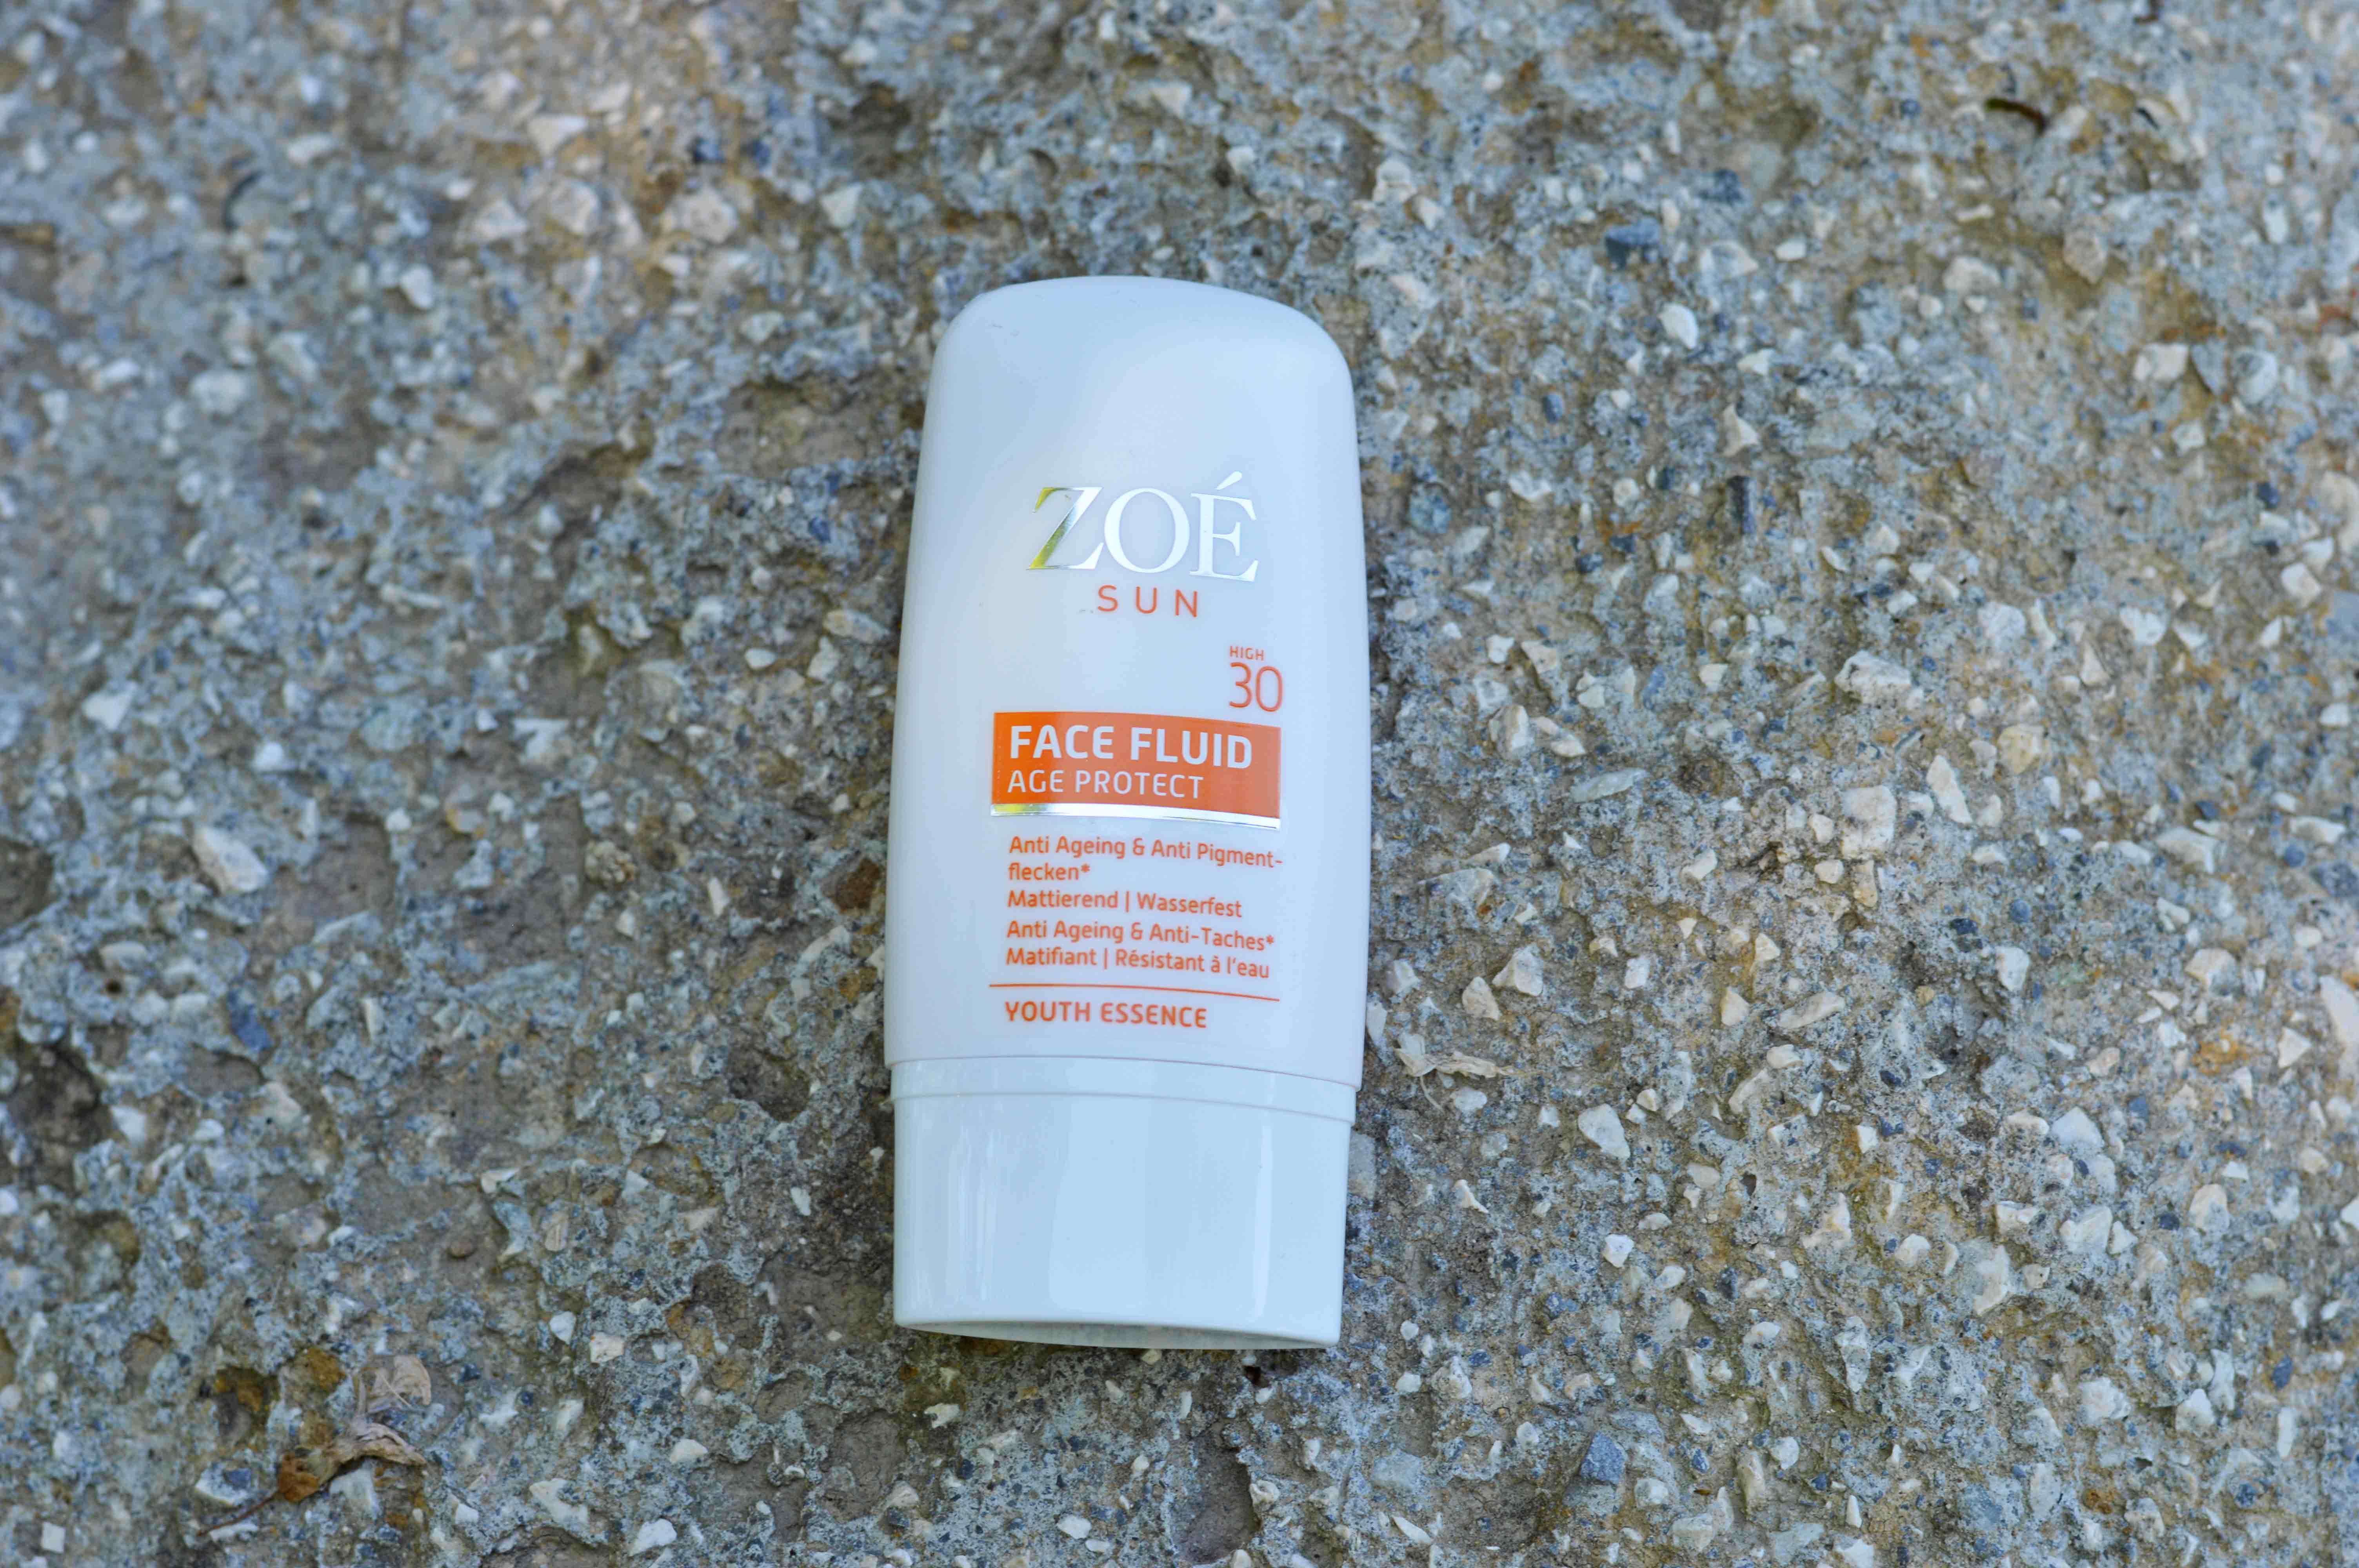 Zoe Face Fluid Age protect